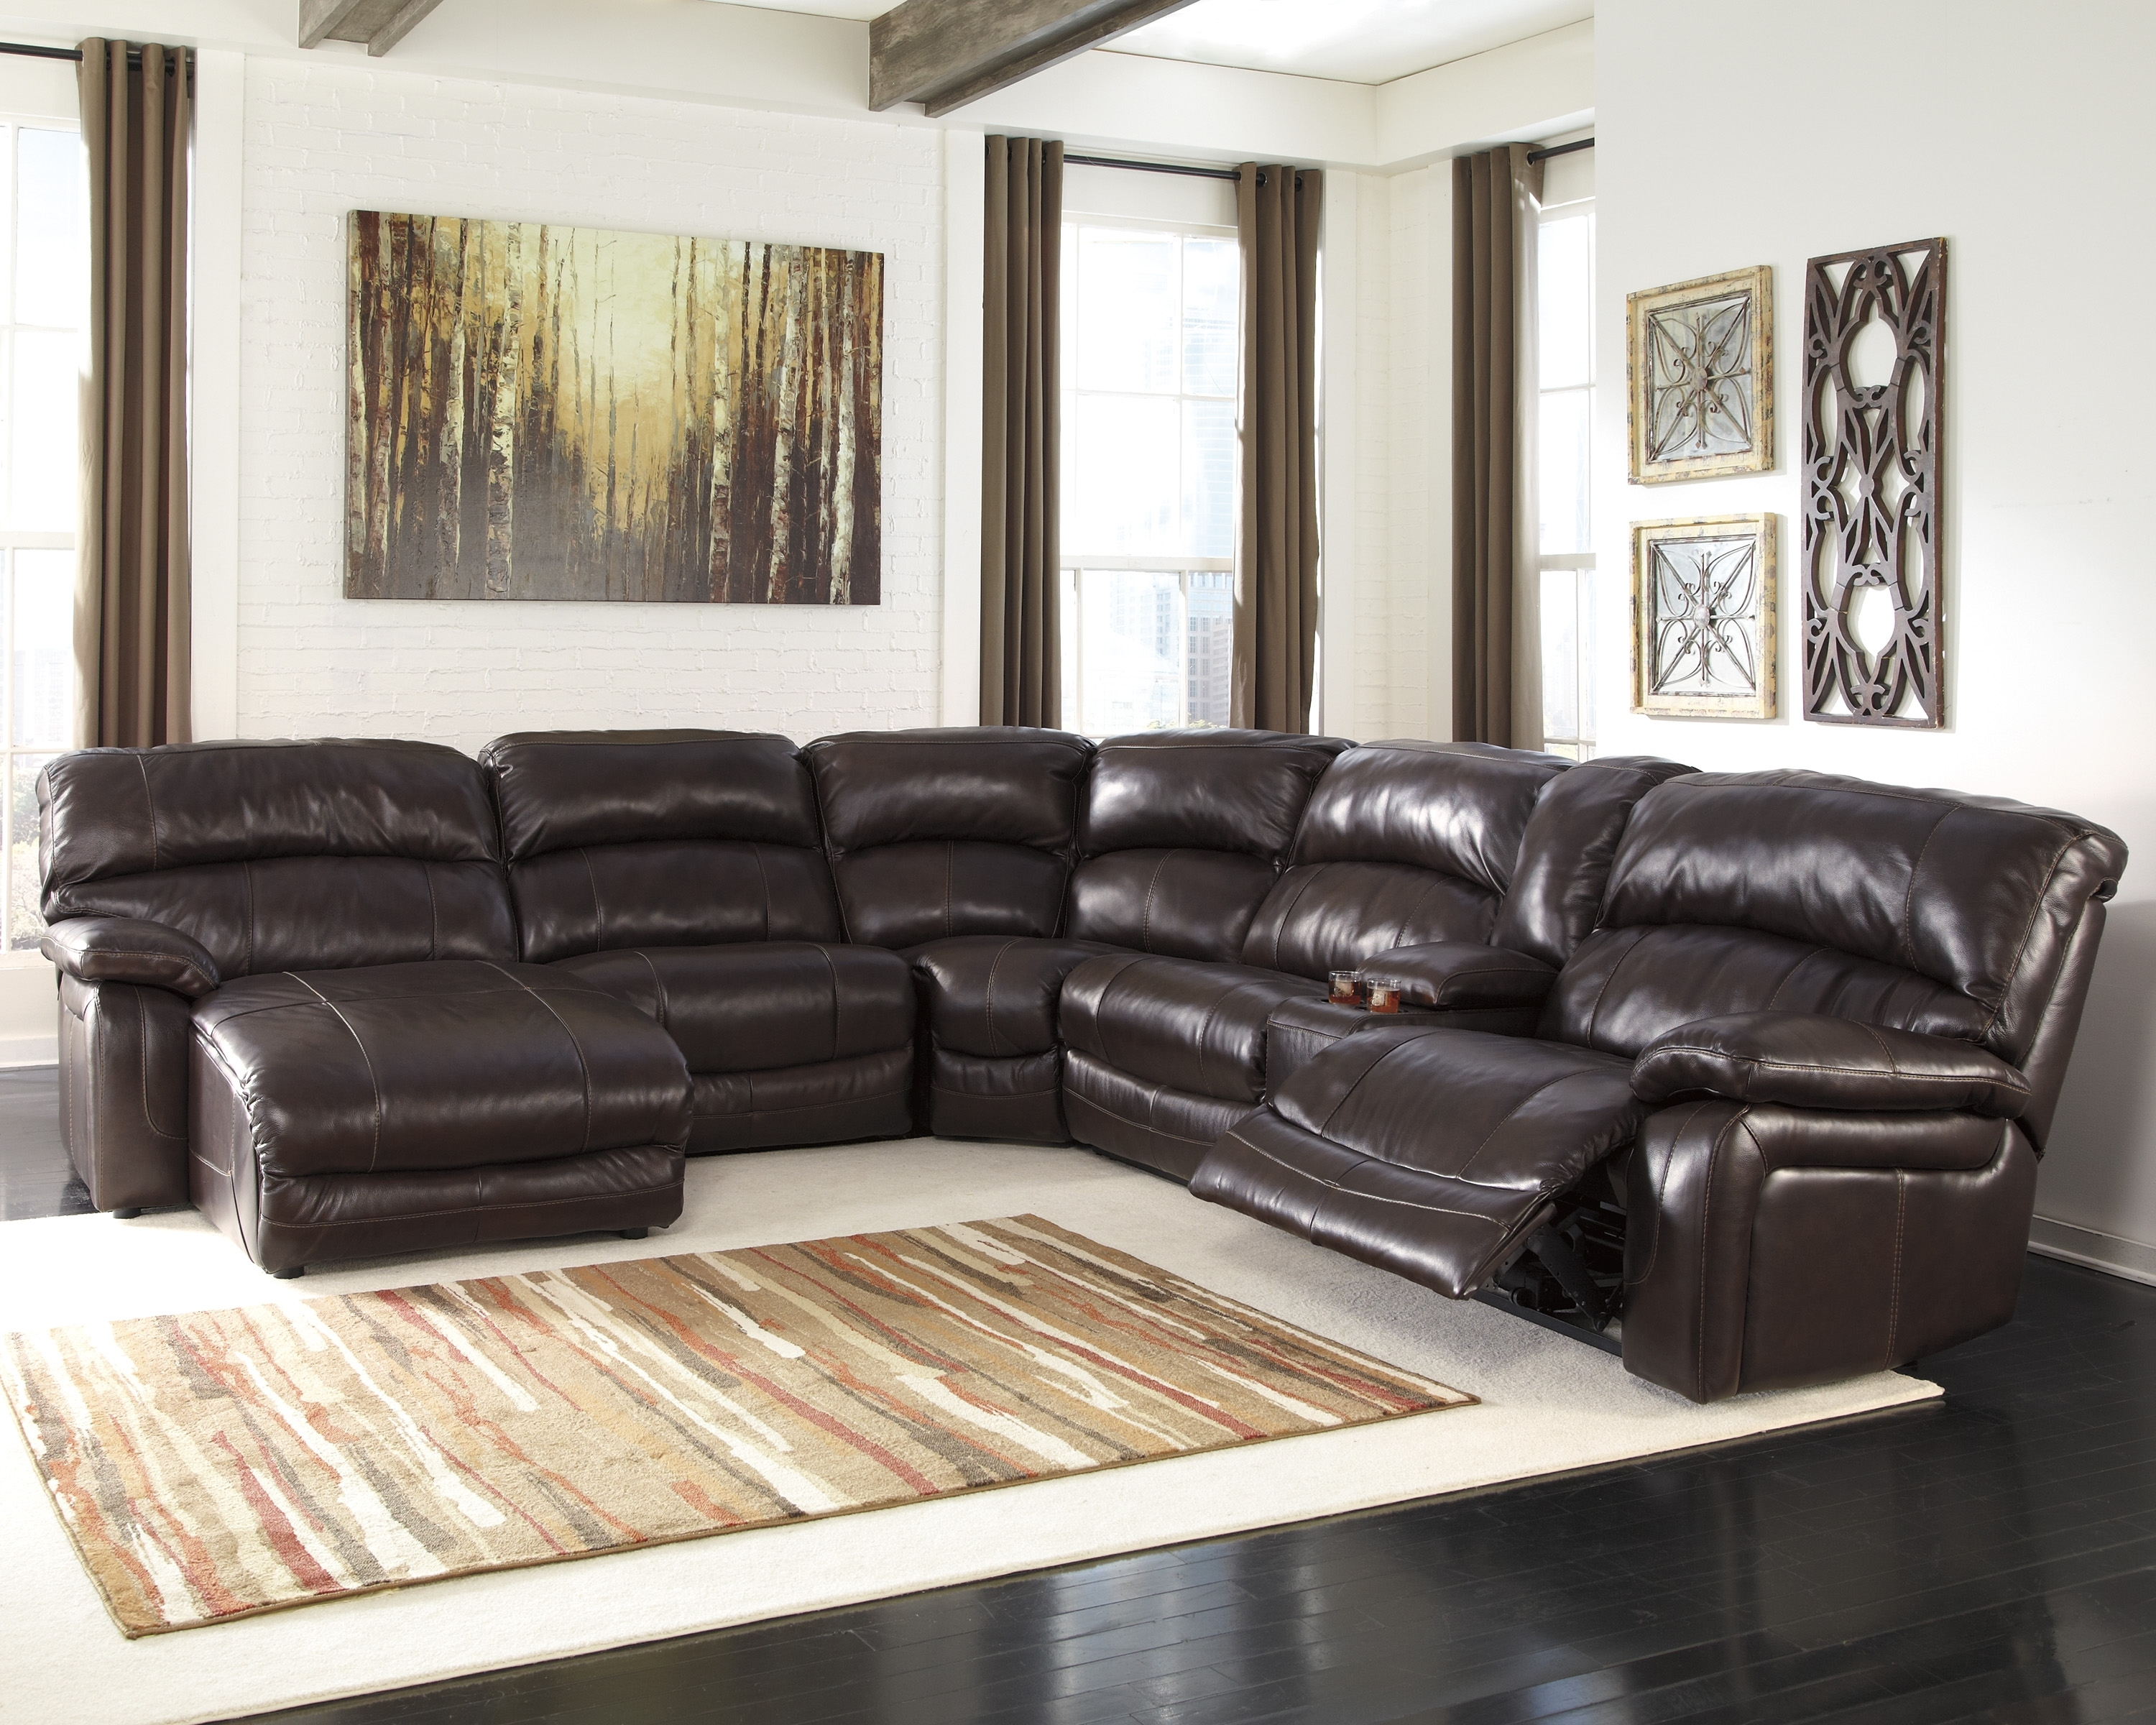 Most Popular 6 Piece Leather Sectional Sofas Pertaining To Leather Sectional Sofa With Recliner And Chaise (View 18 of 20)